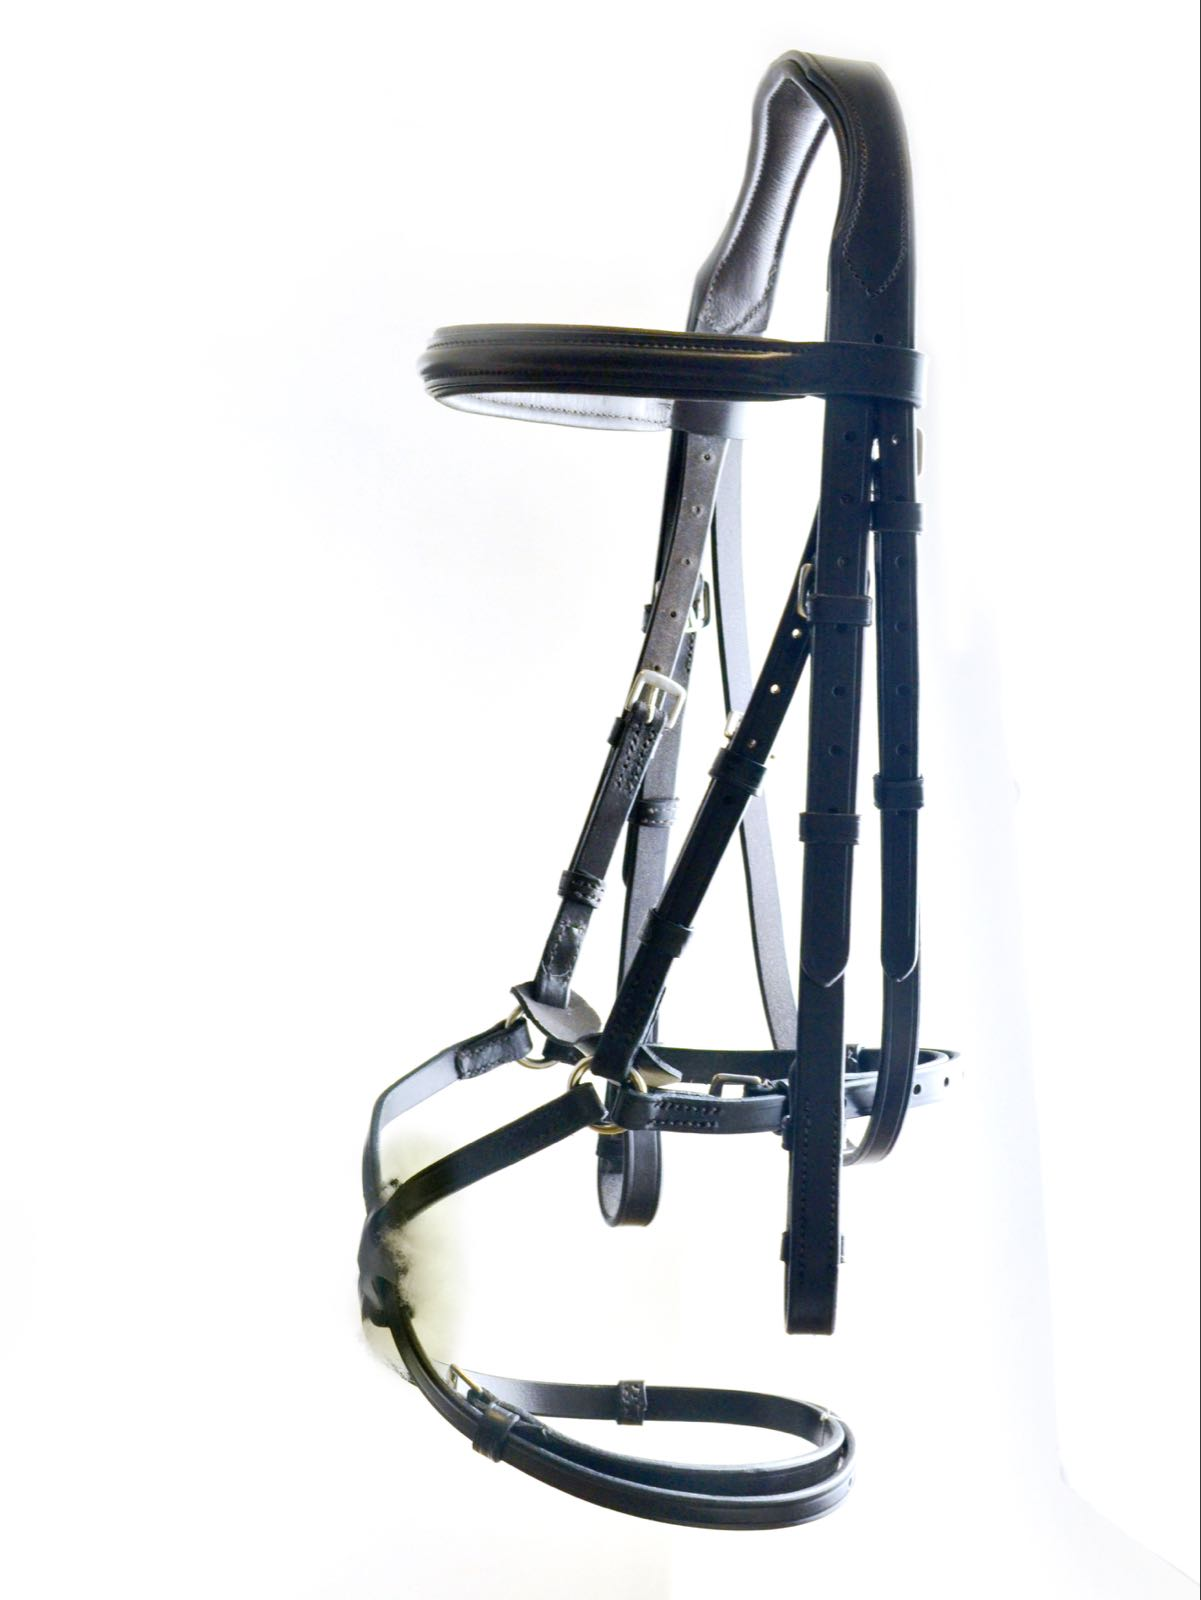 Dever classic comfort grackle bridle